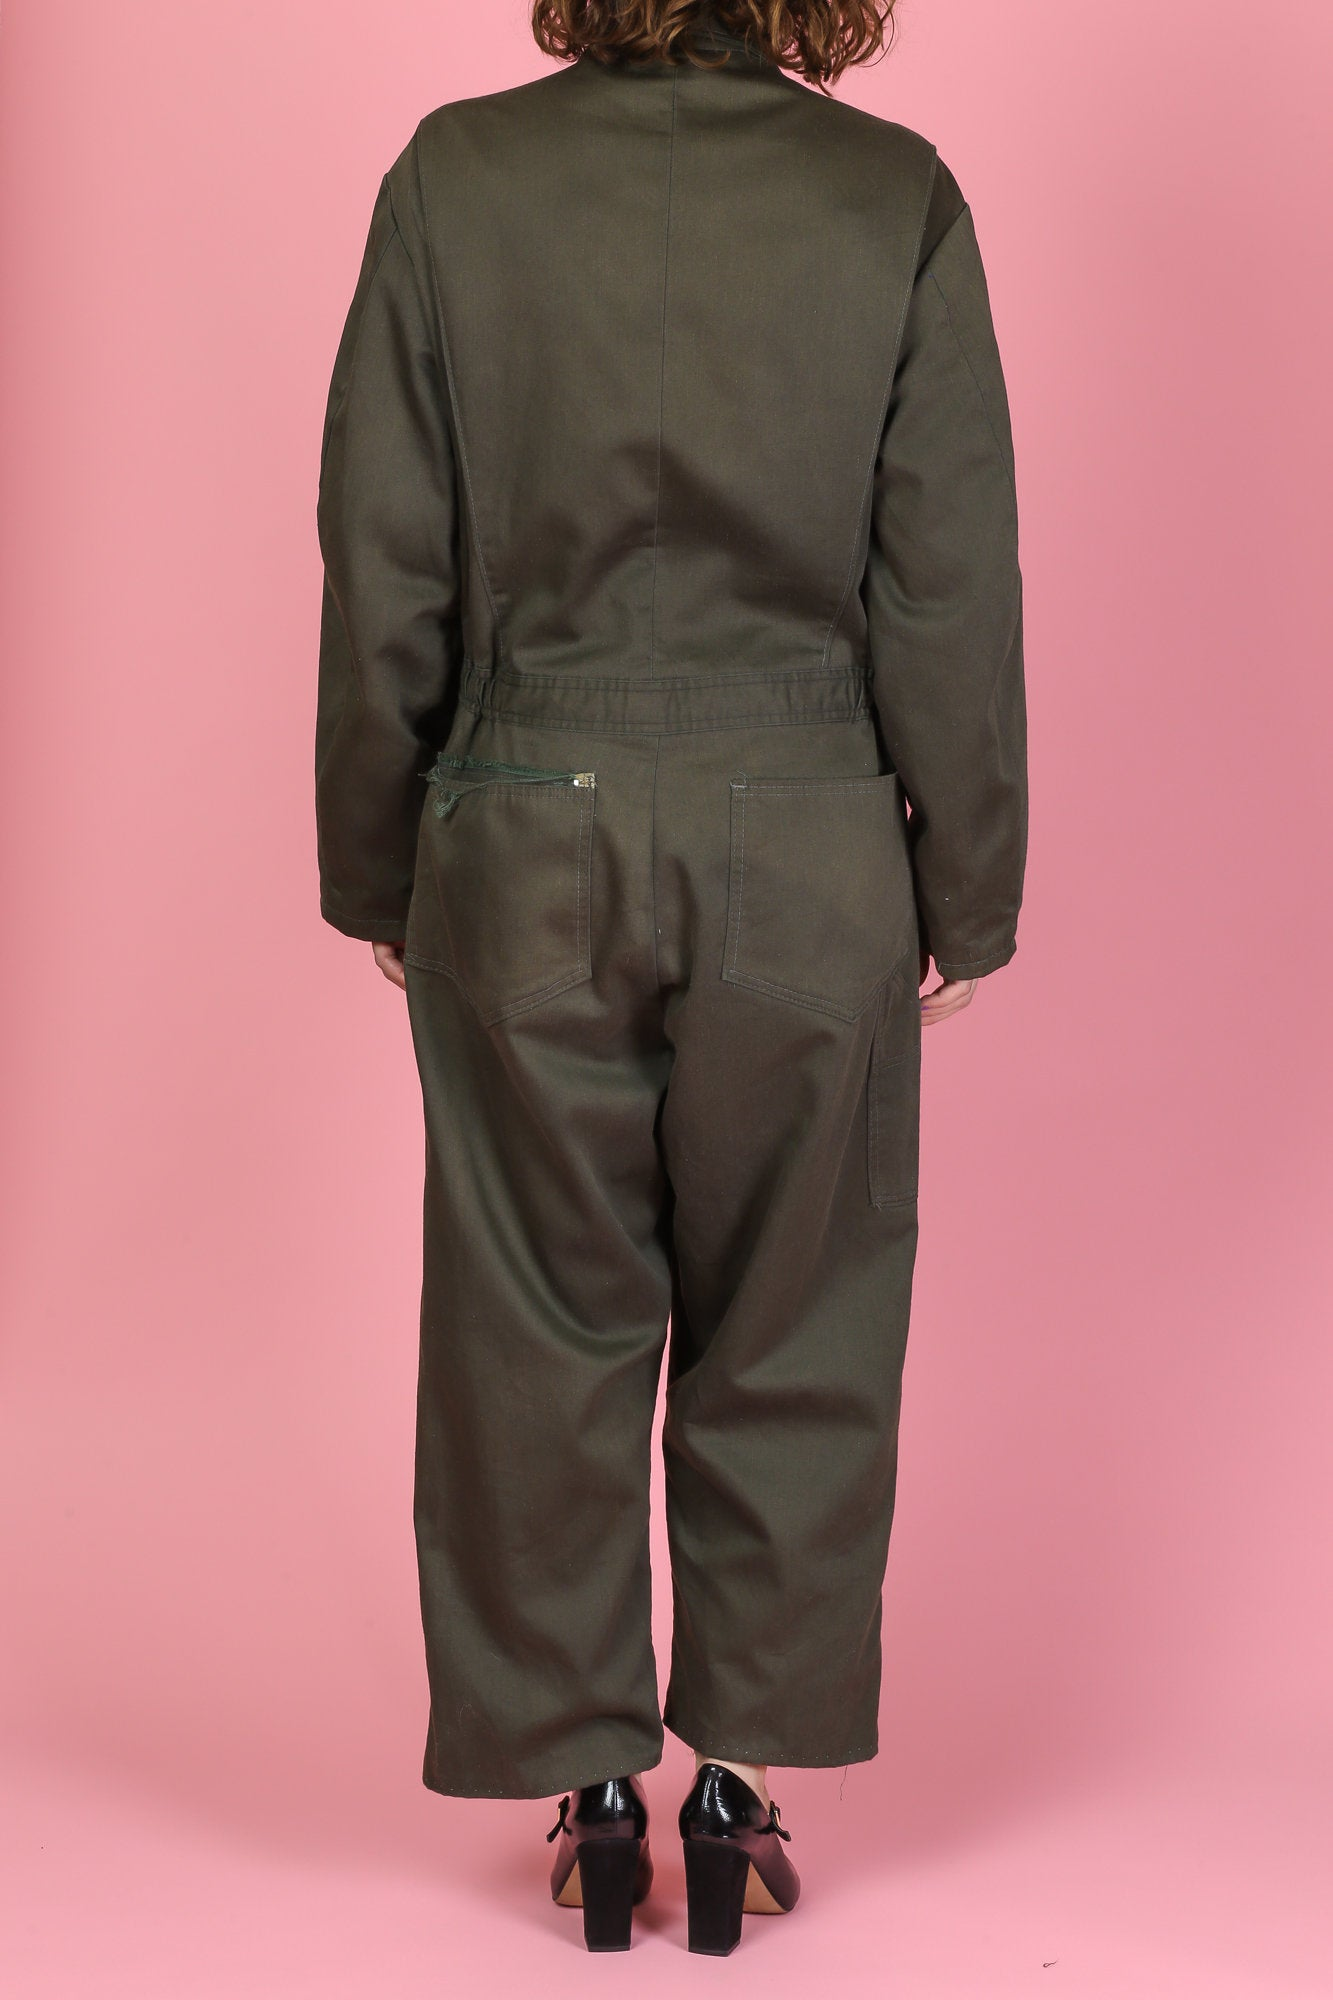 Vintage 1950s Walls' Blizzard Pruf Coveralls - Men's Medium